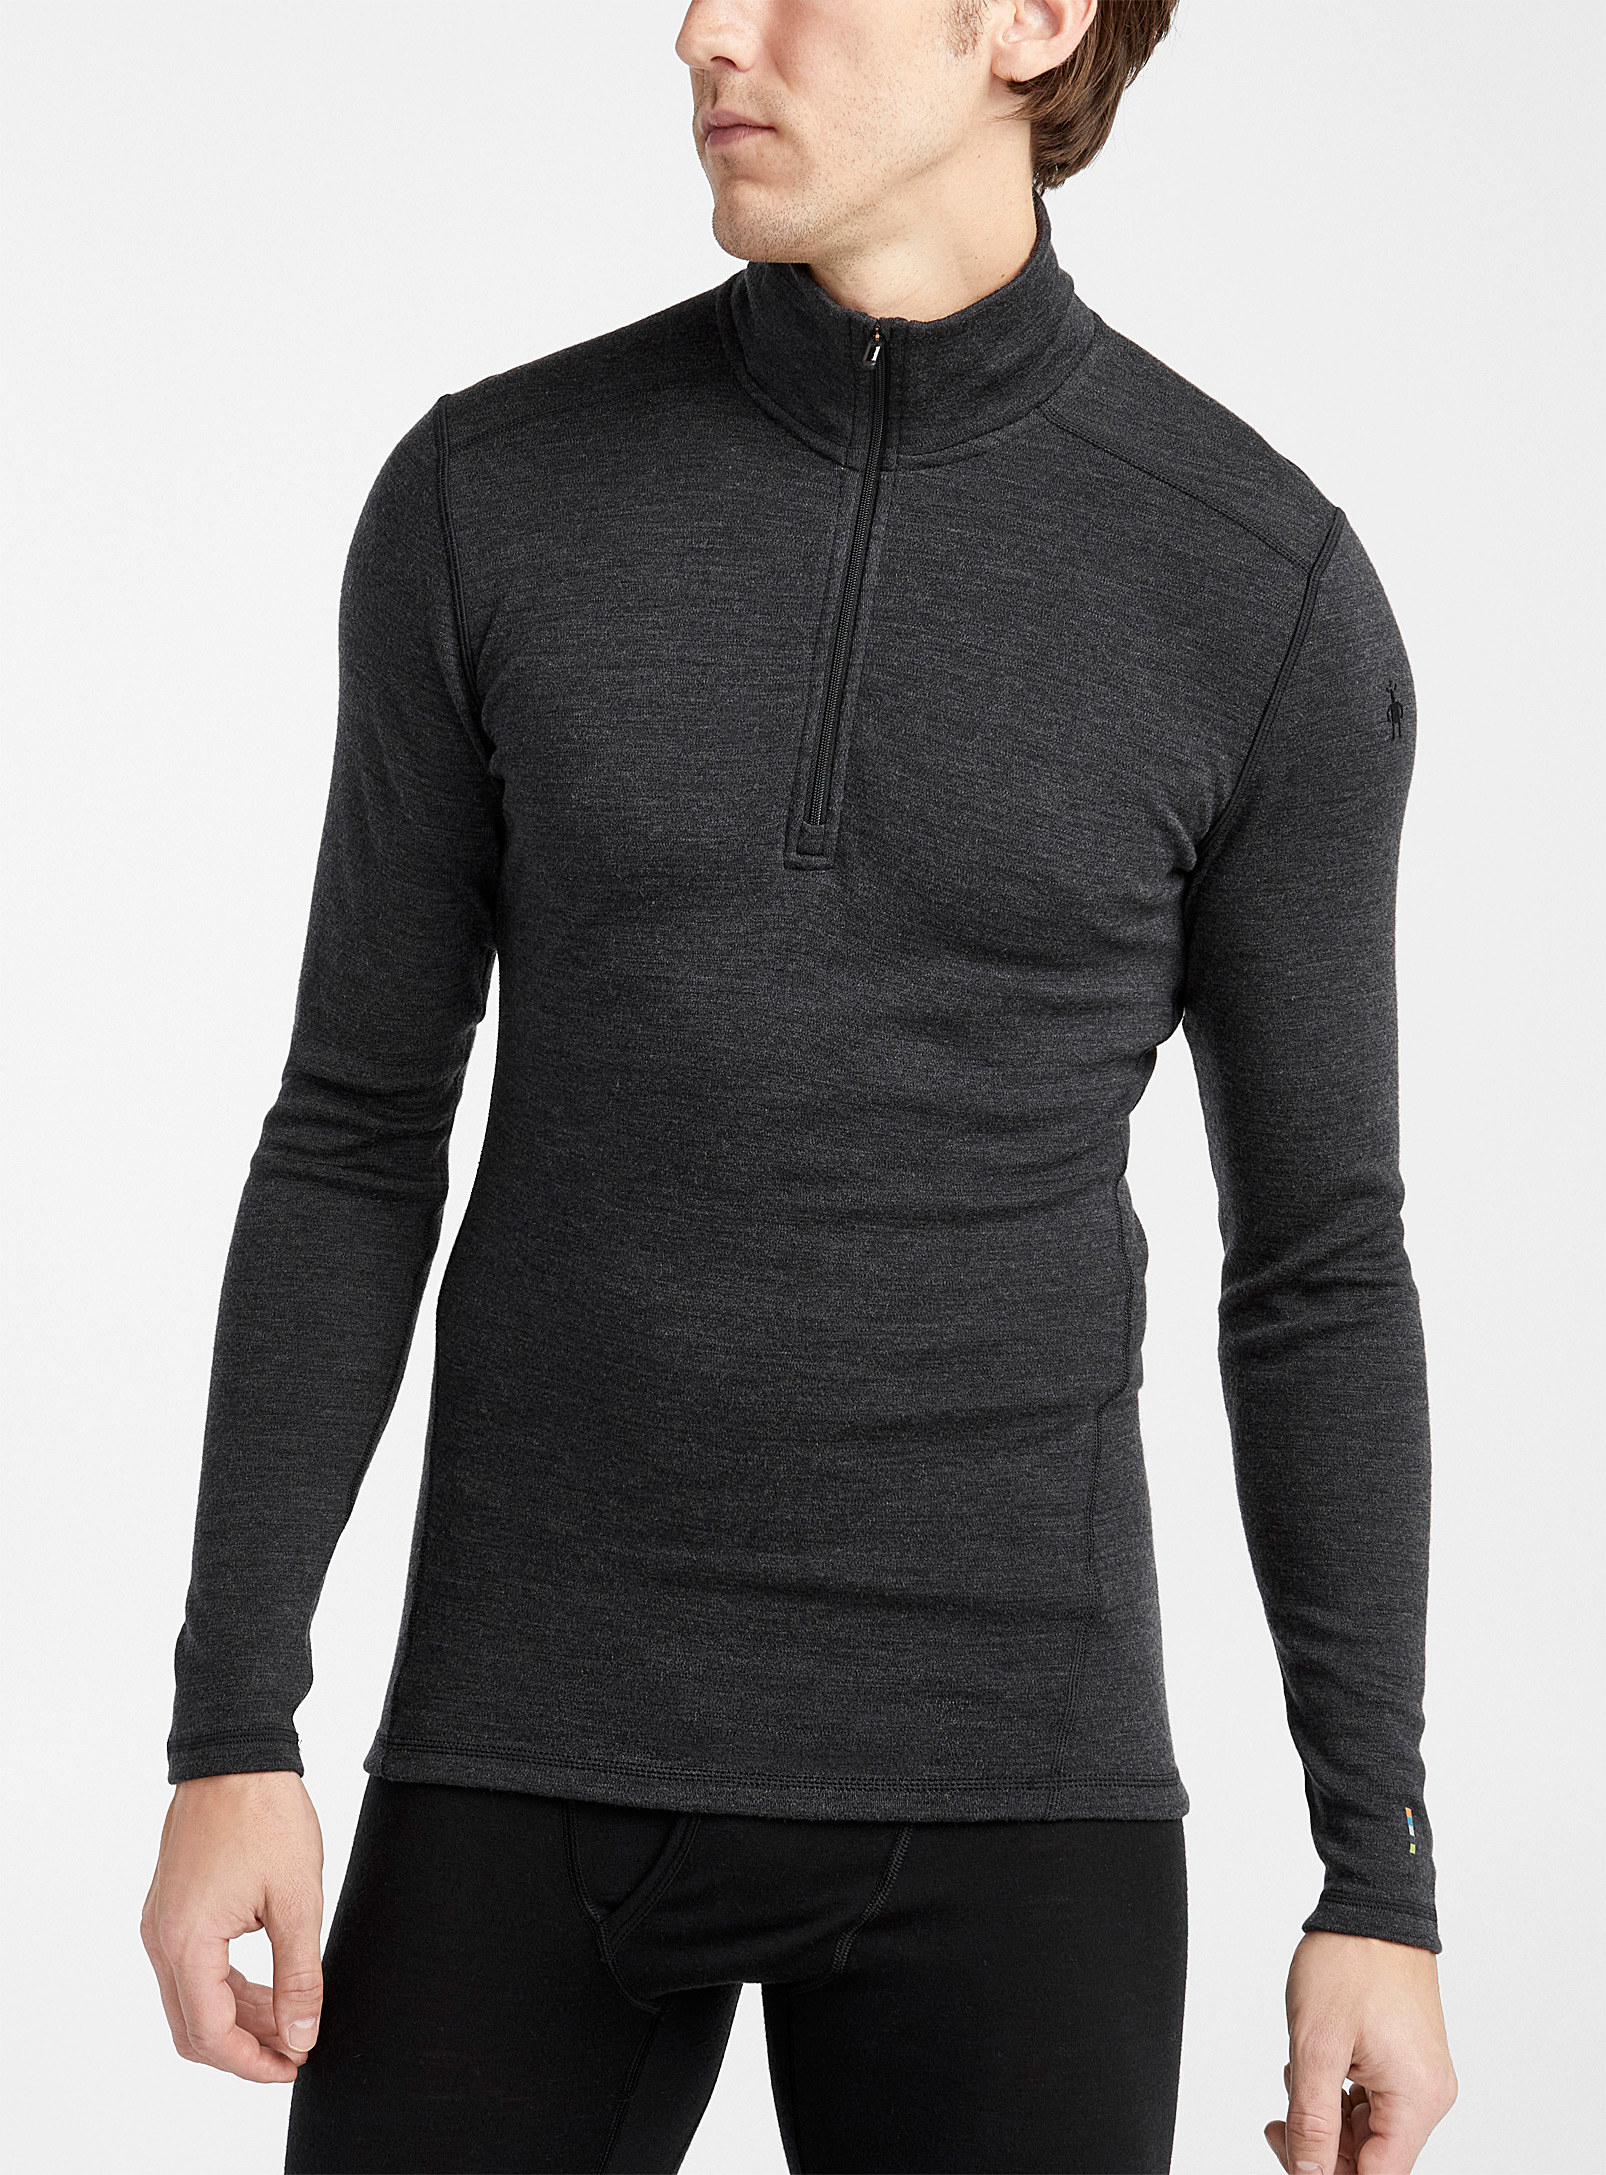 A person wearing a long sleeved thermal shirt